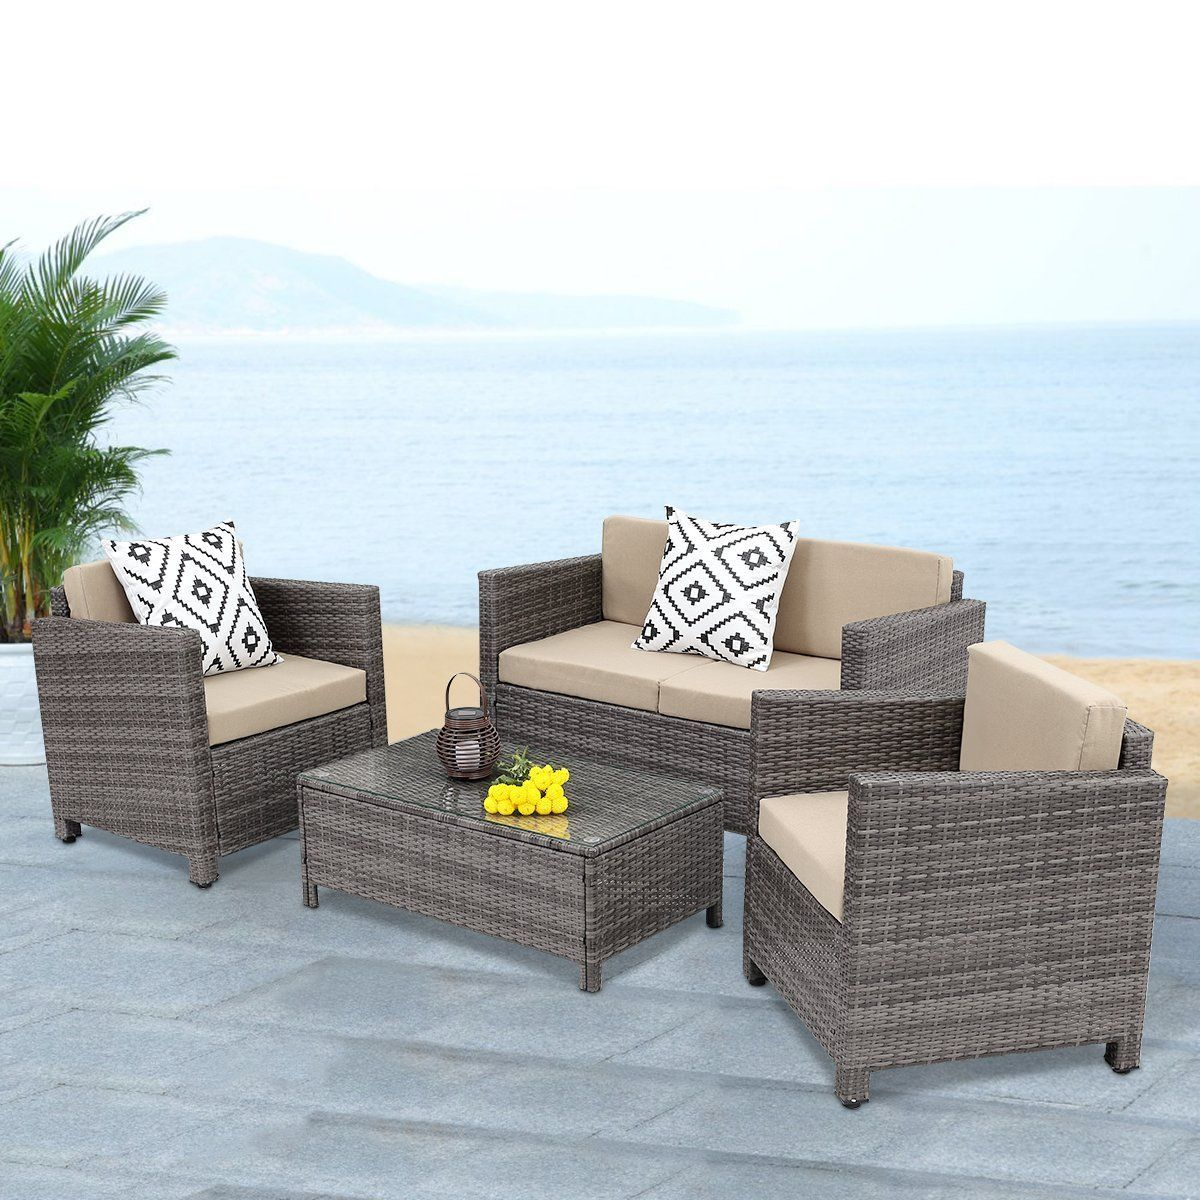 Best Wicker Outdoor Furniture For Sale Discover The Top Rated